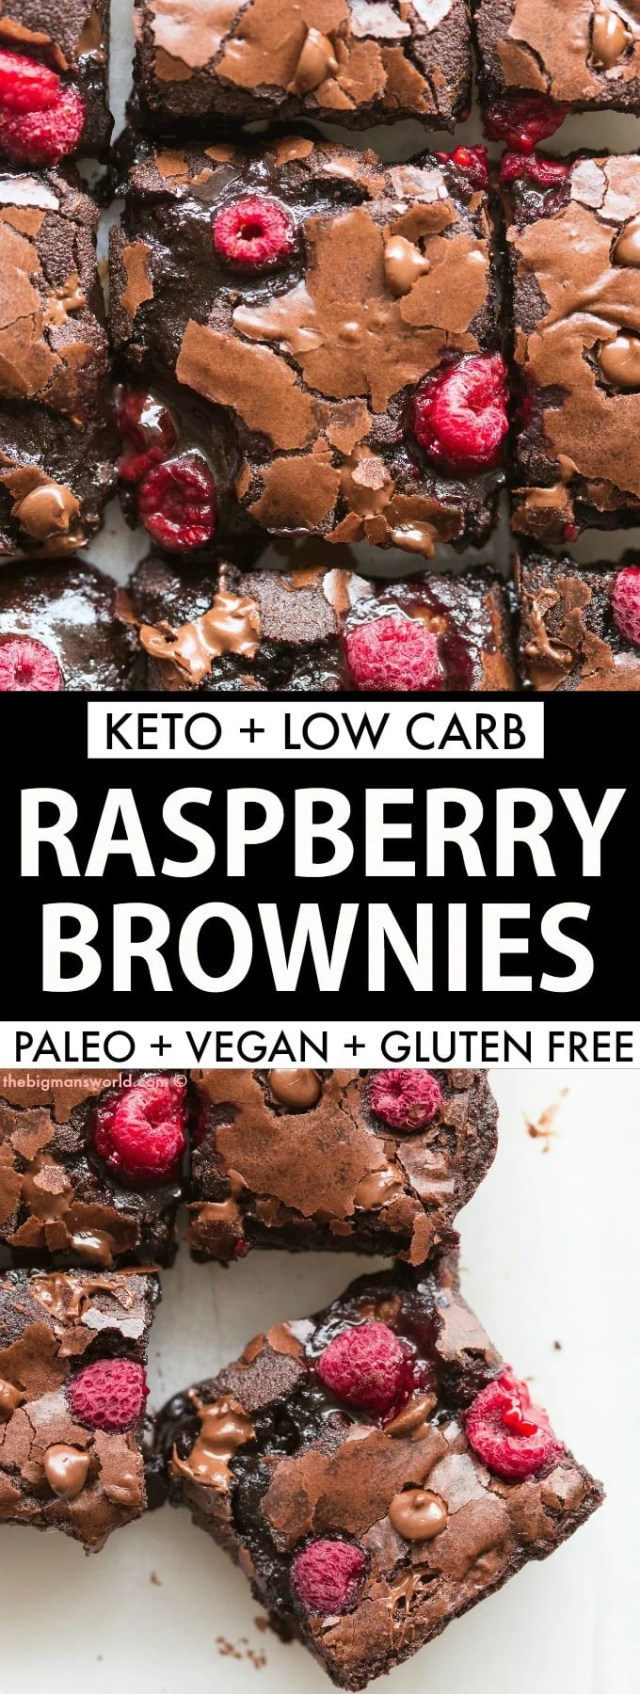 Keto Chocolate Raspberry Brownies that are vegan, gluten free and paleo! Gooey and fudgy.